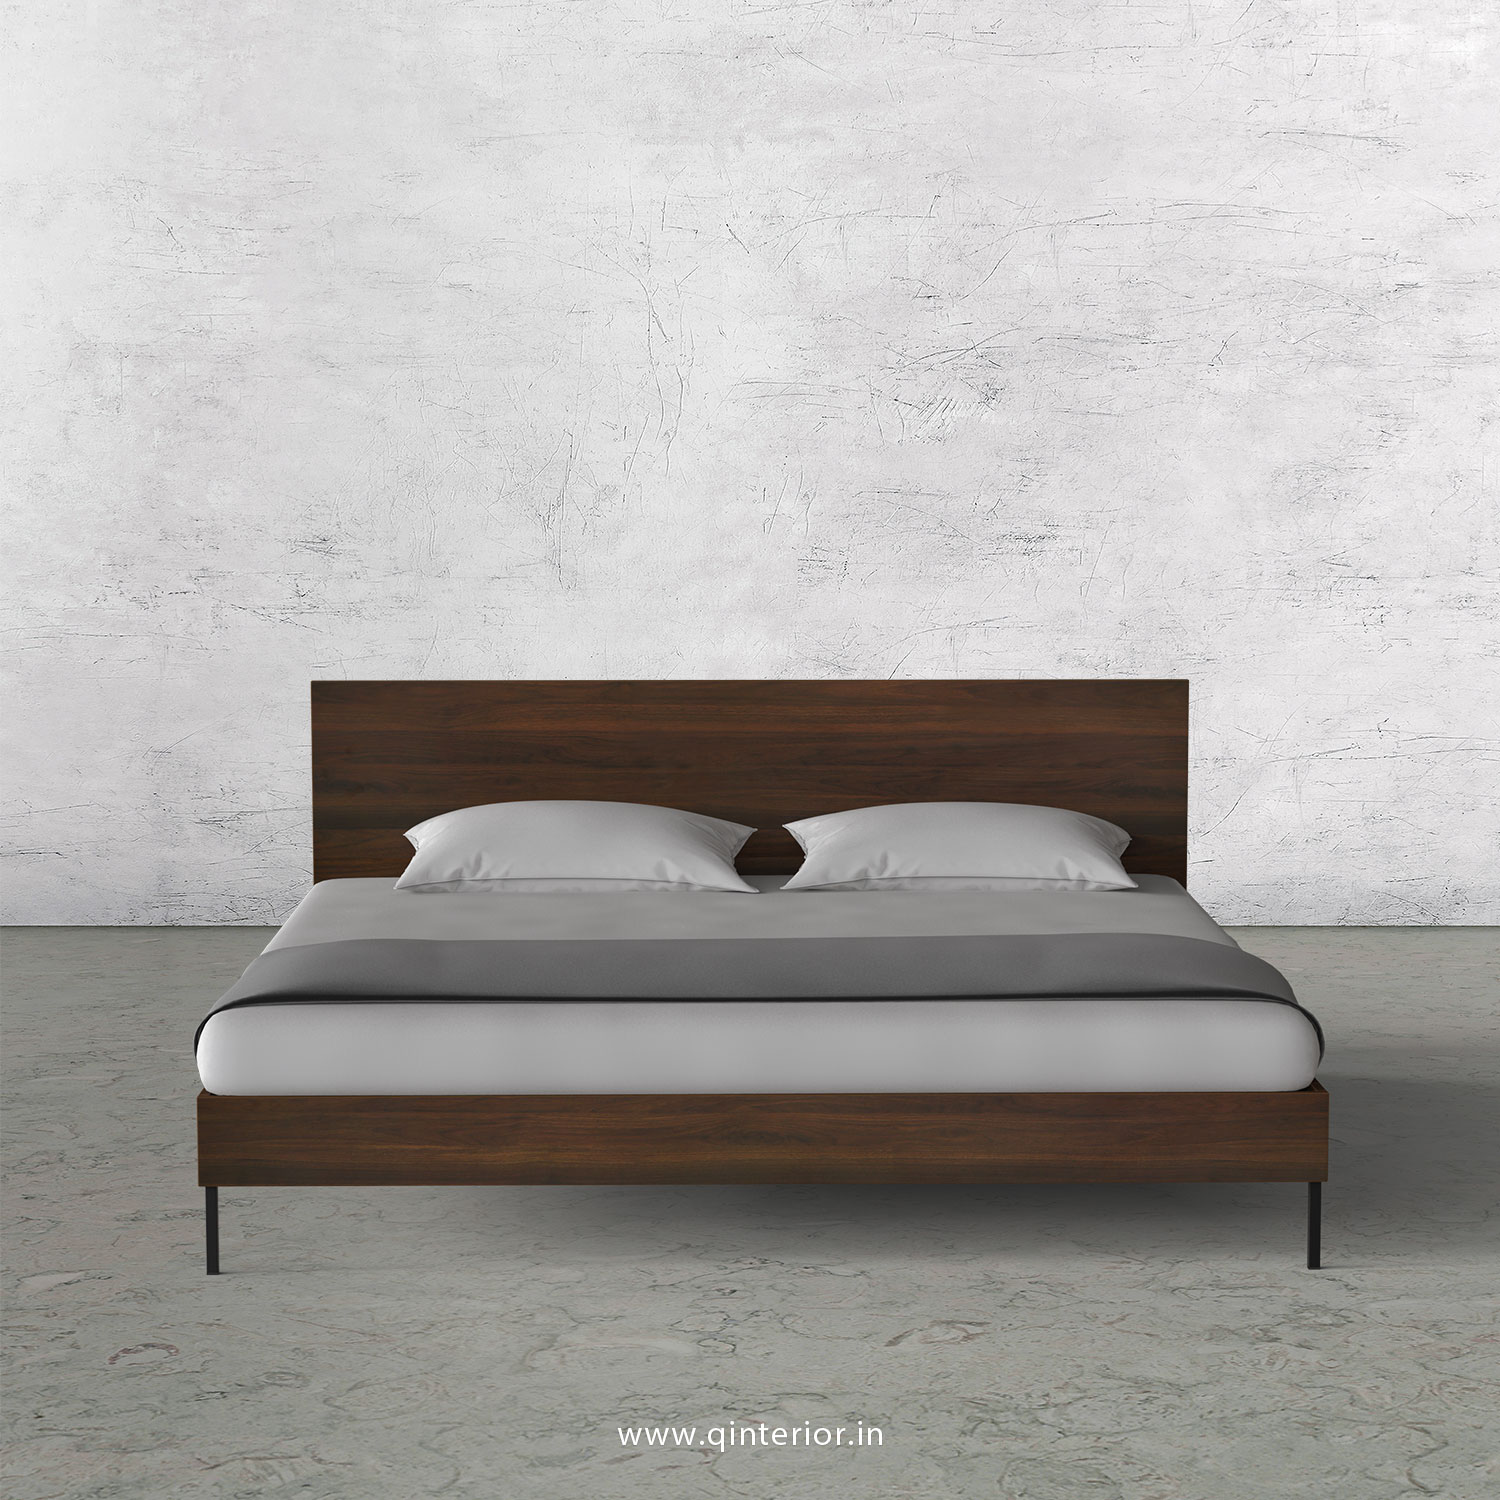 Stable King Size Bed in Walnut Finish - KBD105 C1